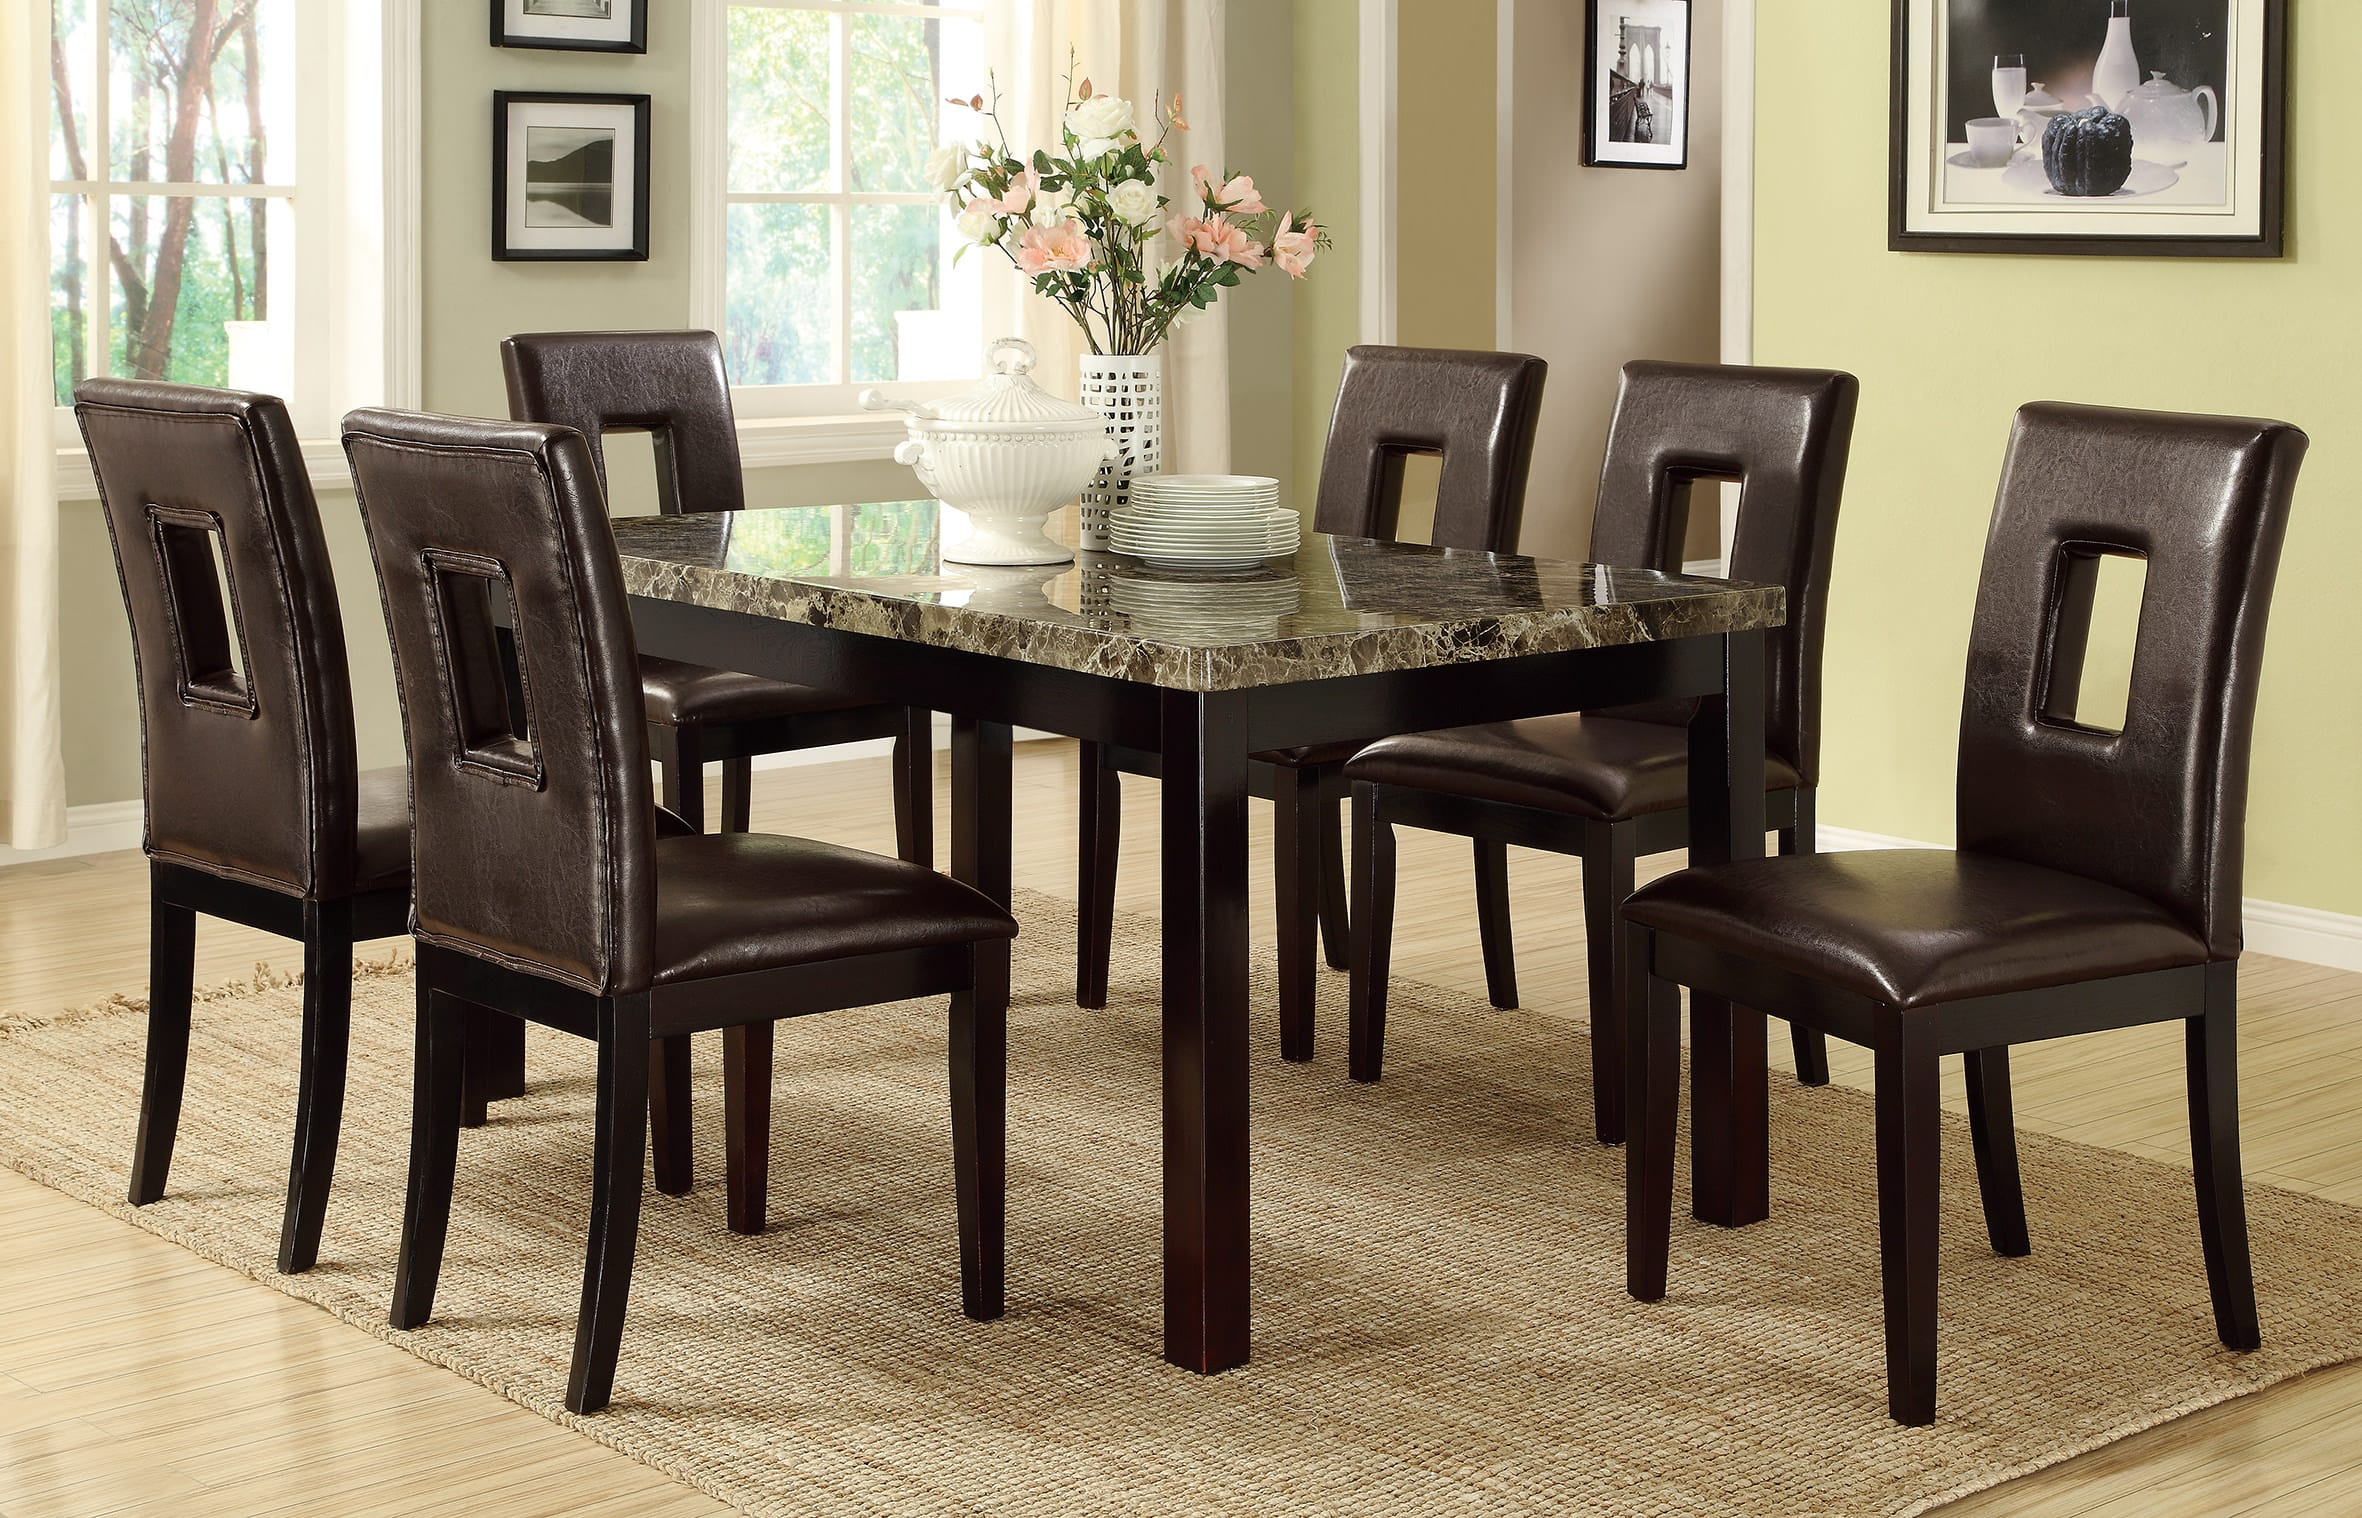 F1051 Dark Espresso Dining Chair (Set of 2) by Poundex